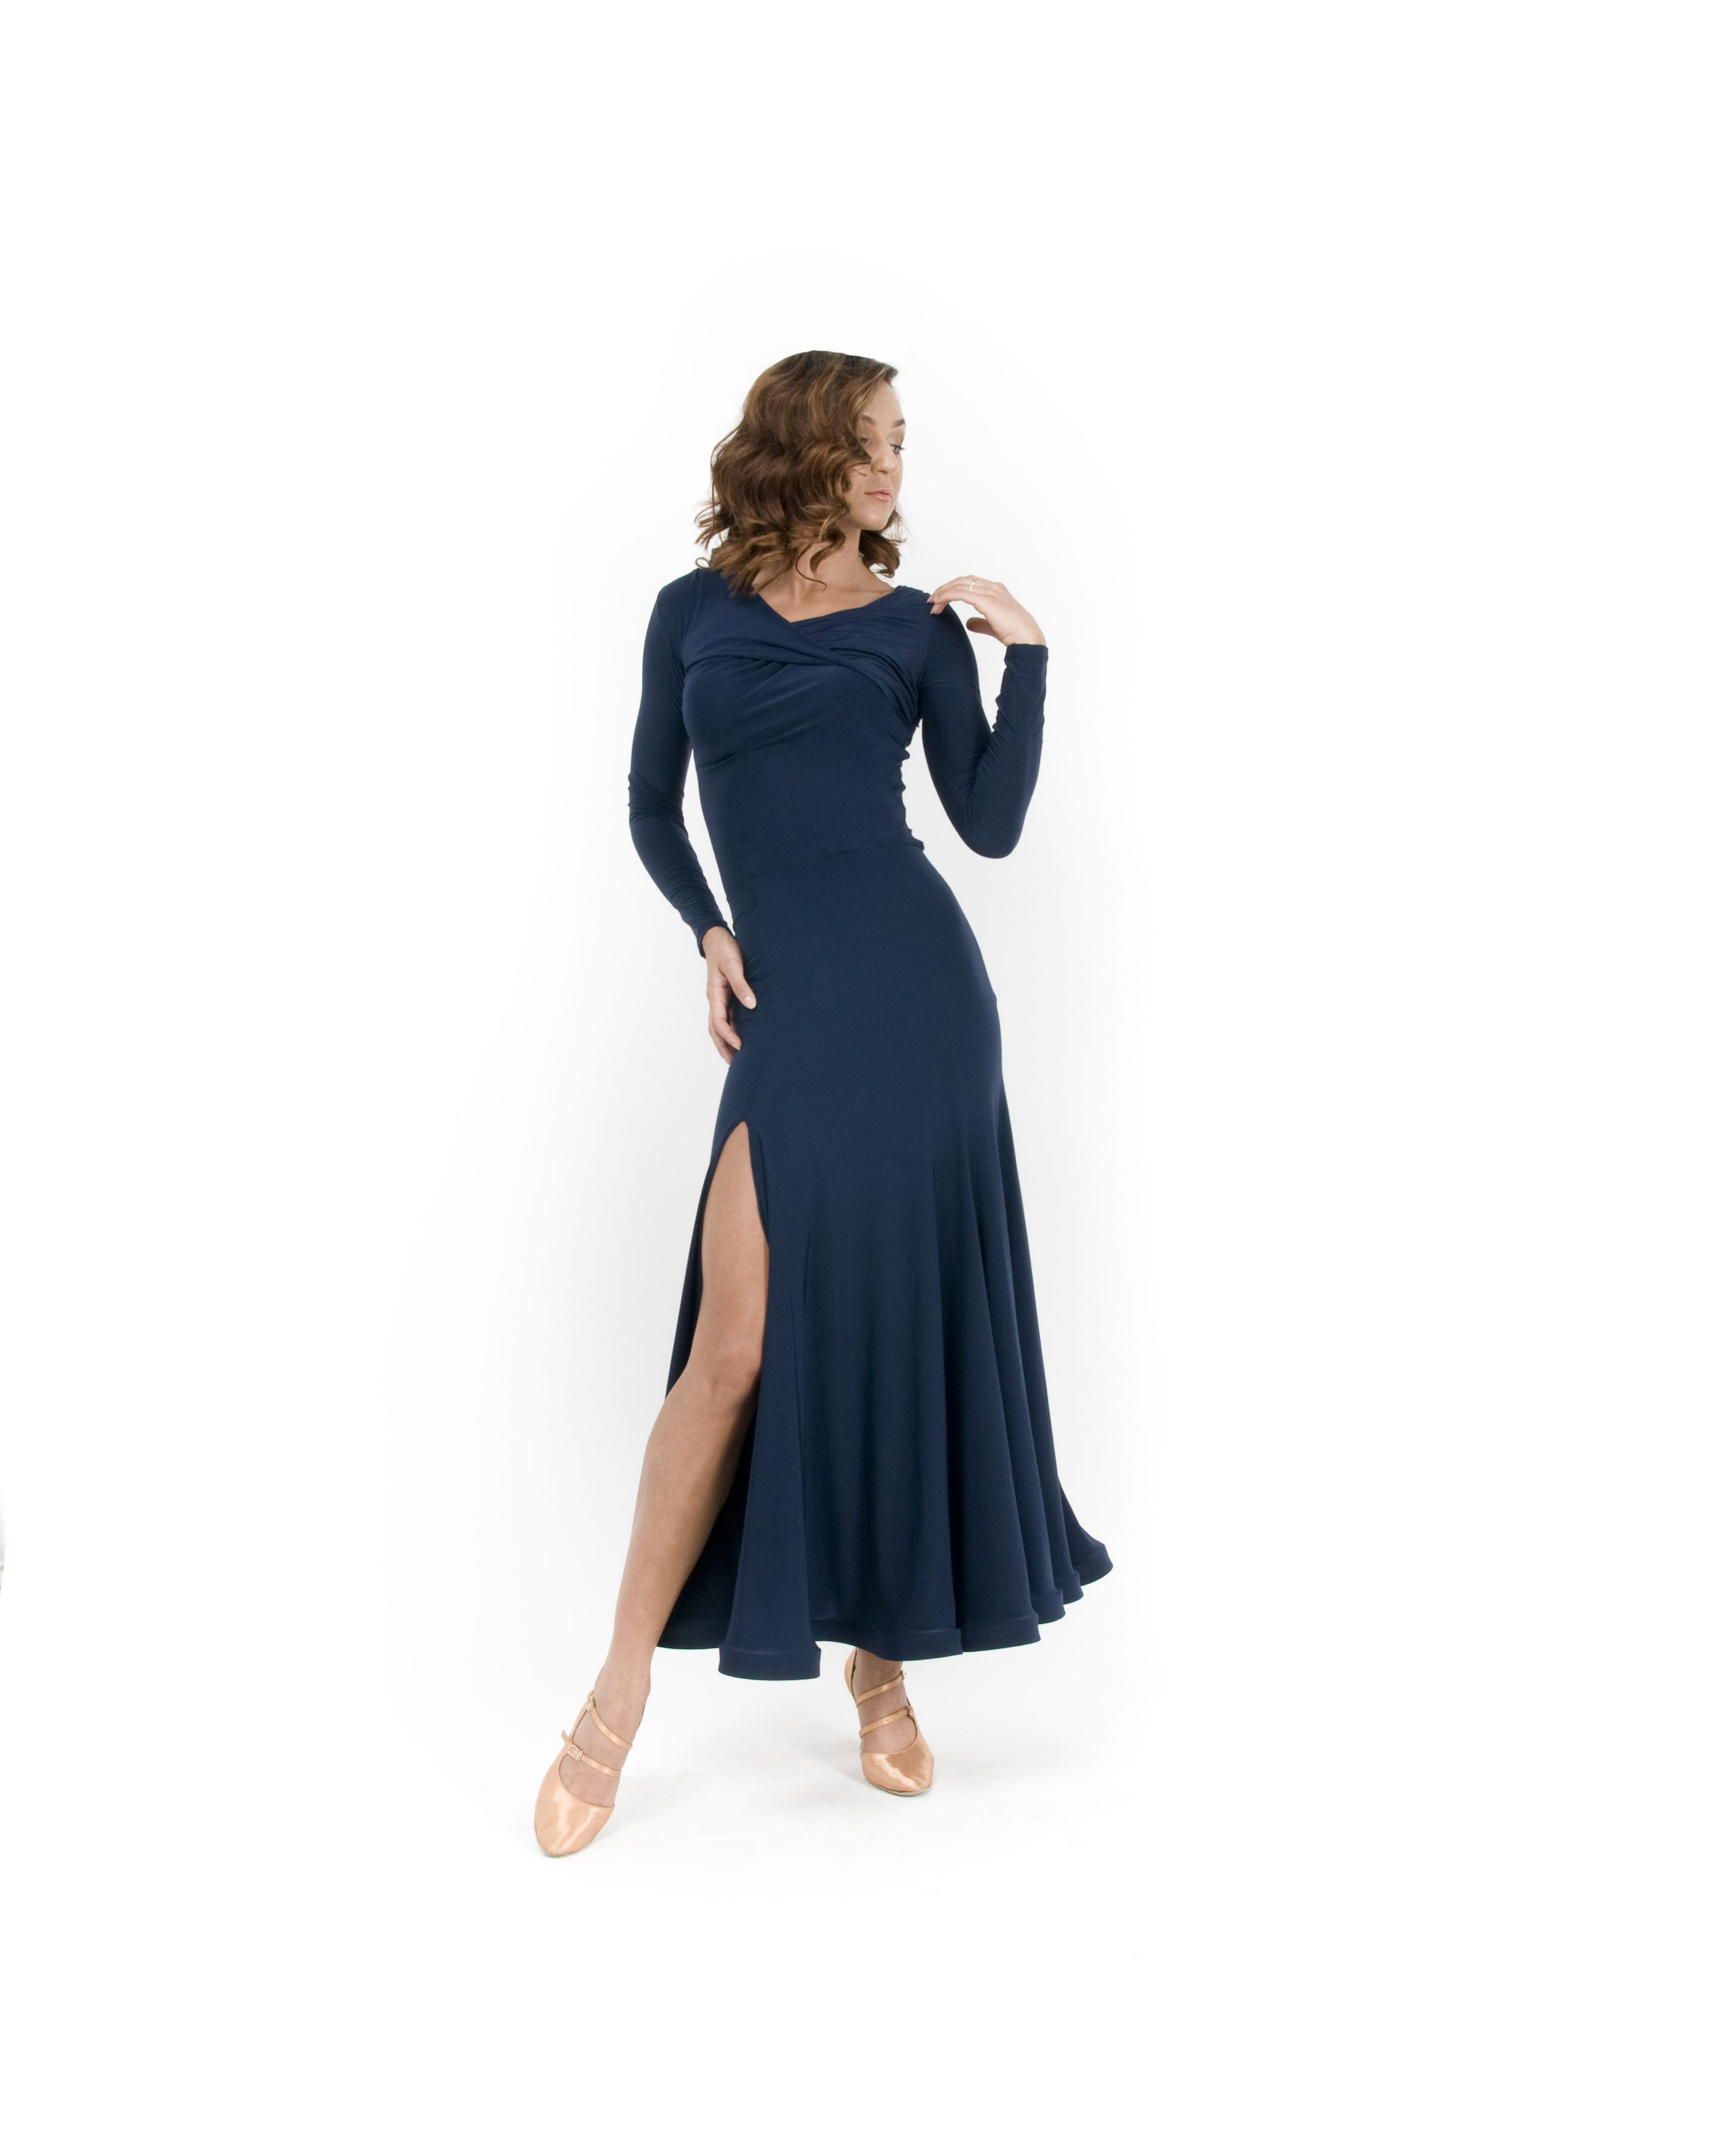 The Sophia Draped Top and Simone Skirt in Navy